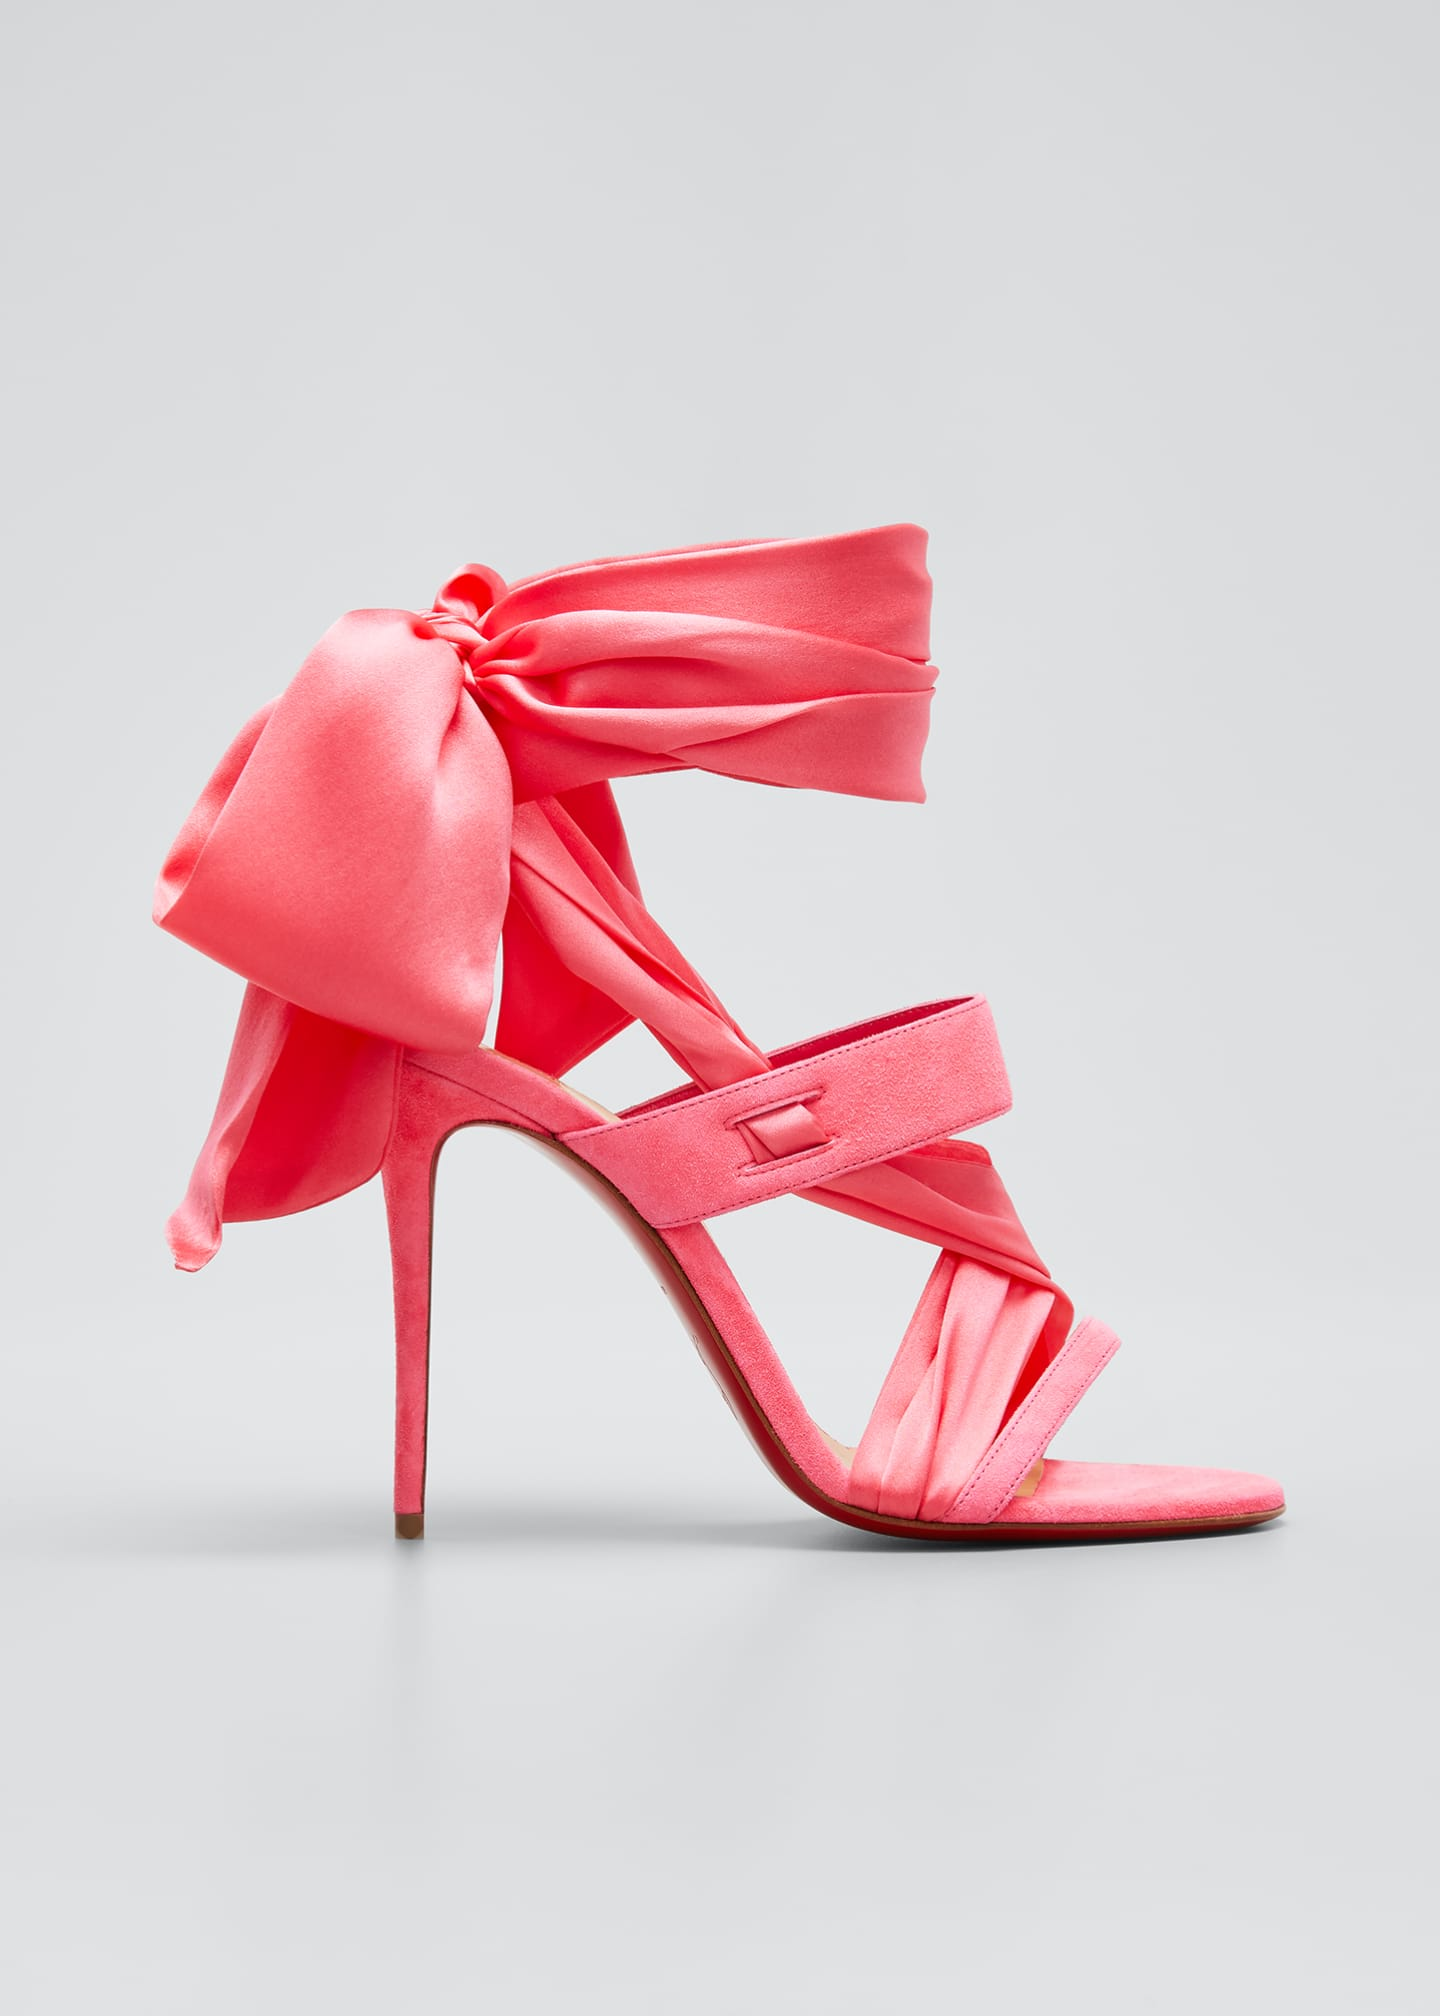 Image 1 of 3: Foulard Cheville Satin/Suede Wrap Red Sole Sandals